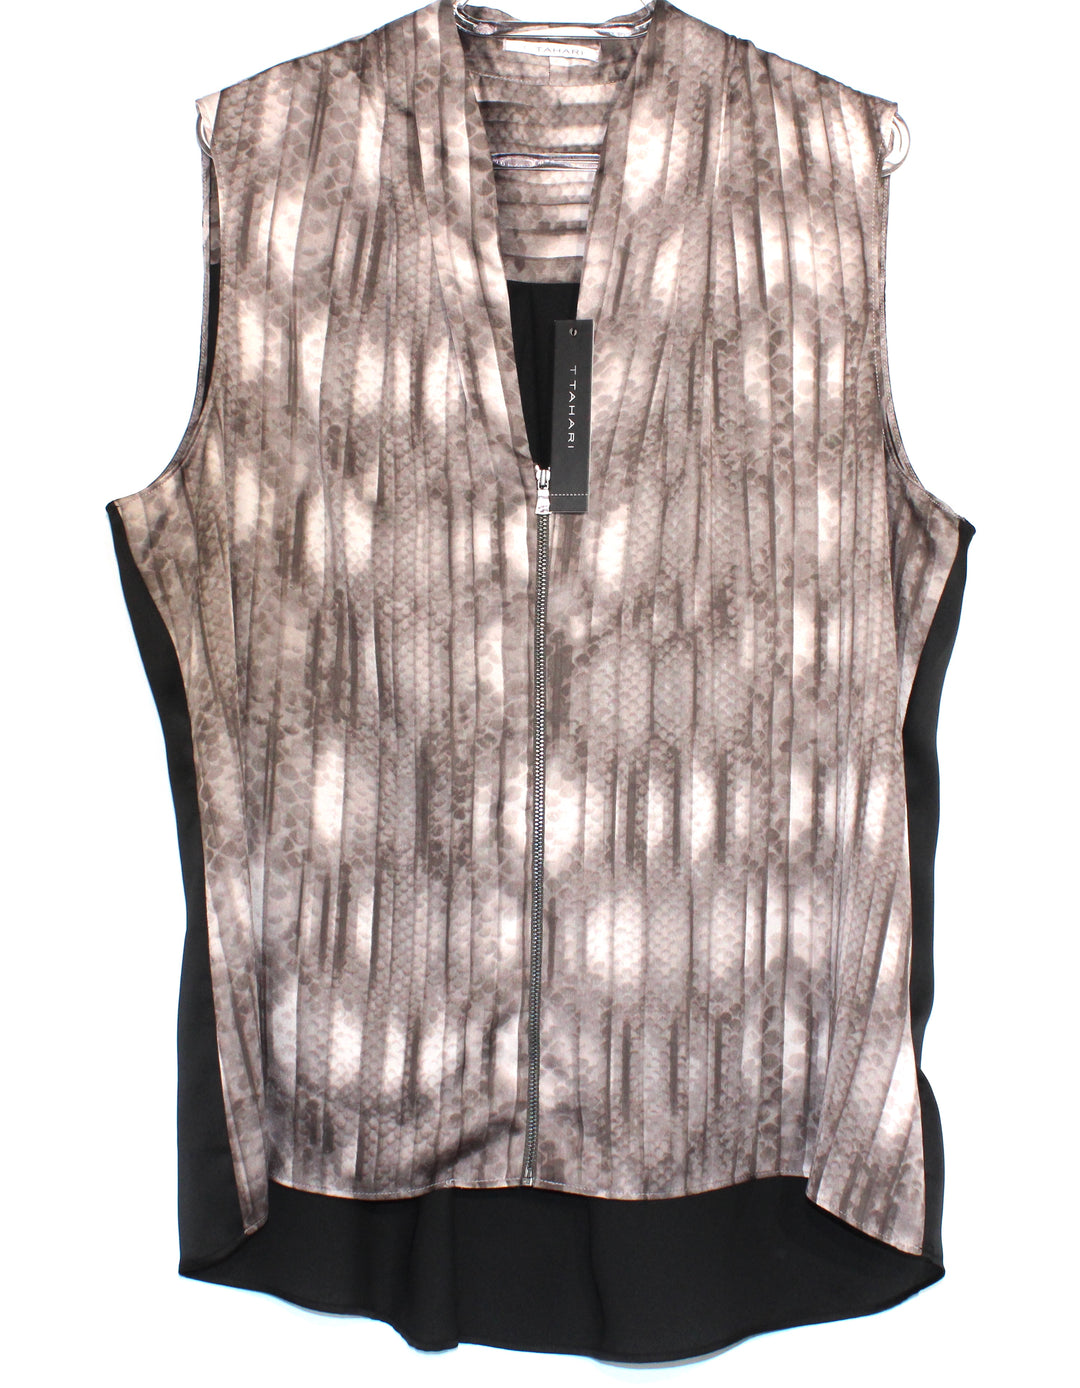 Primary Photo - BRAND: T TAHARI <BR>STYLE: TOP SLEEVELESS <BR>COLOR: ANIMAL PRINT <BR>SIZE: XL <BR>SKU: 262-26211-136532